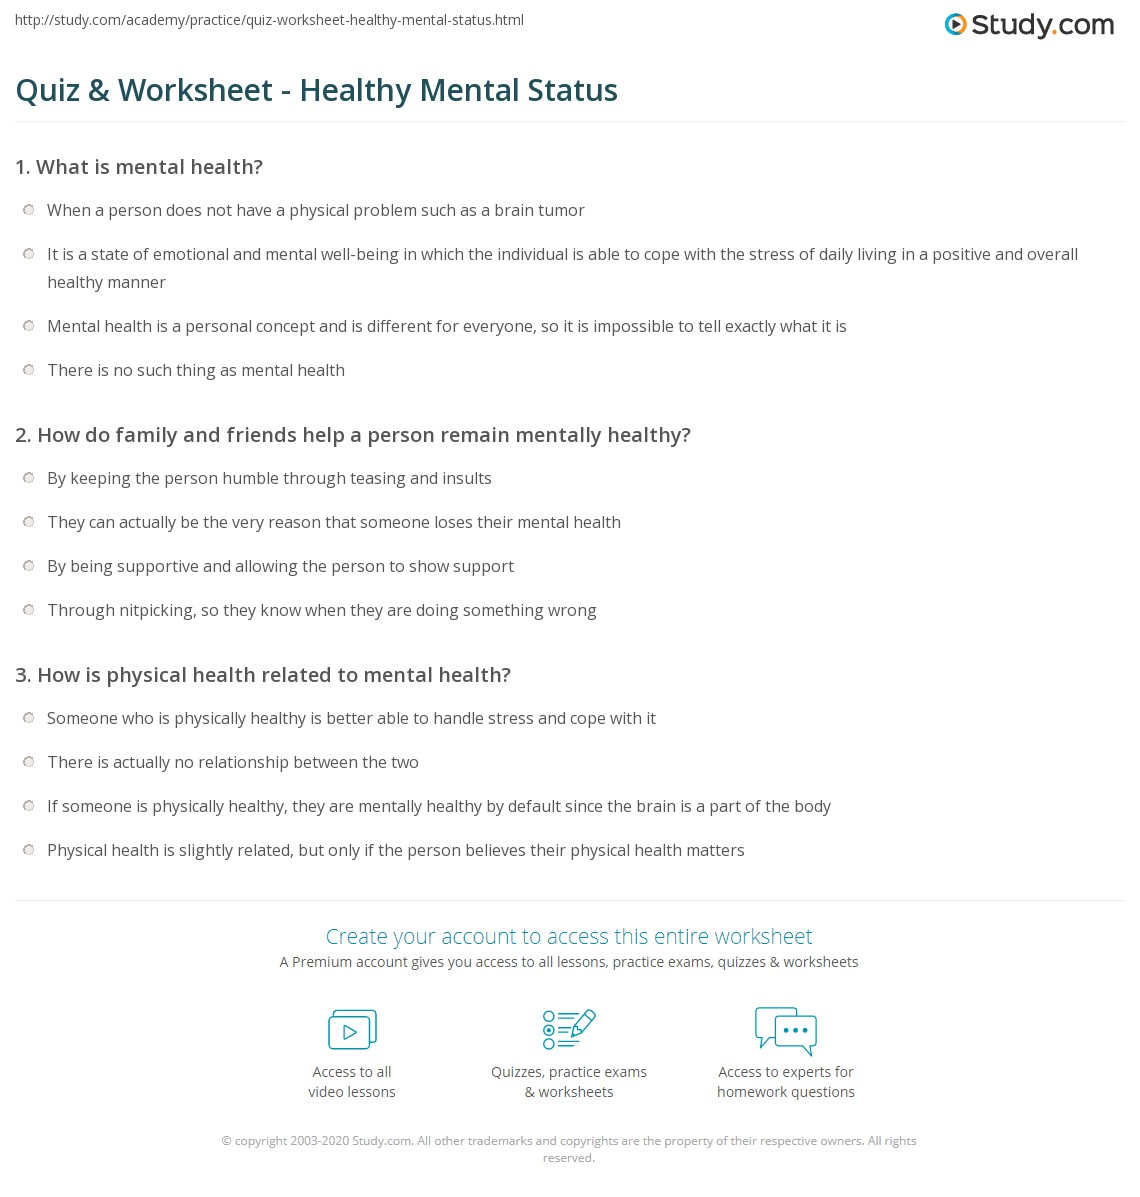 characteristics of a healthy person mentally